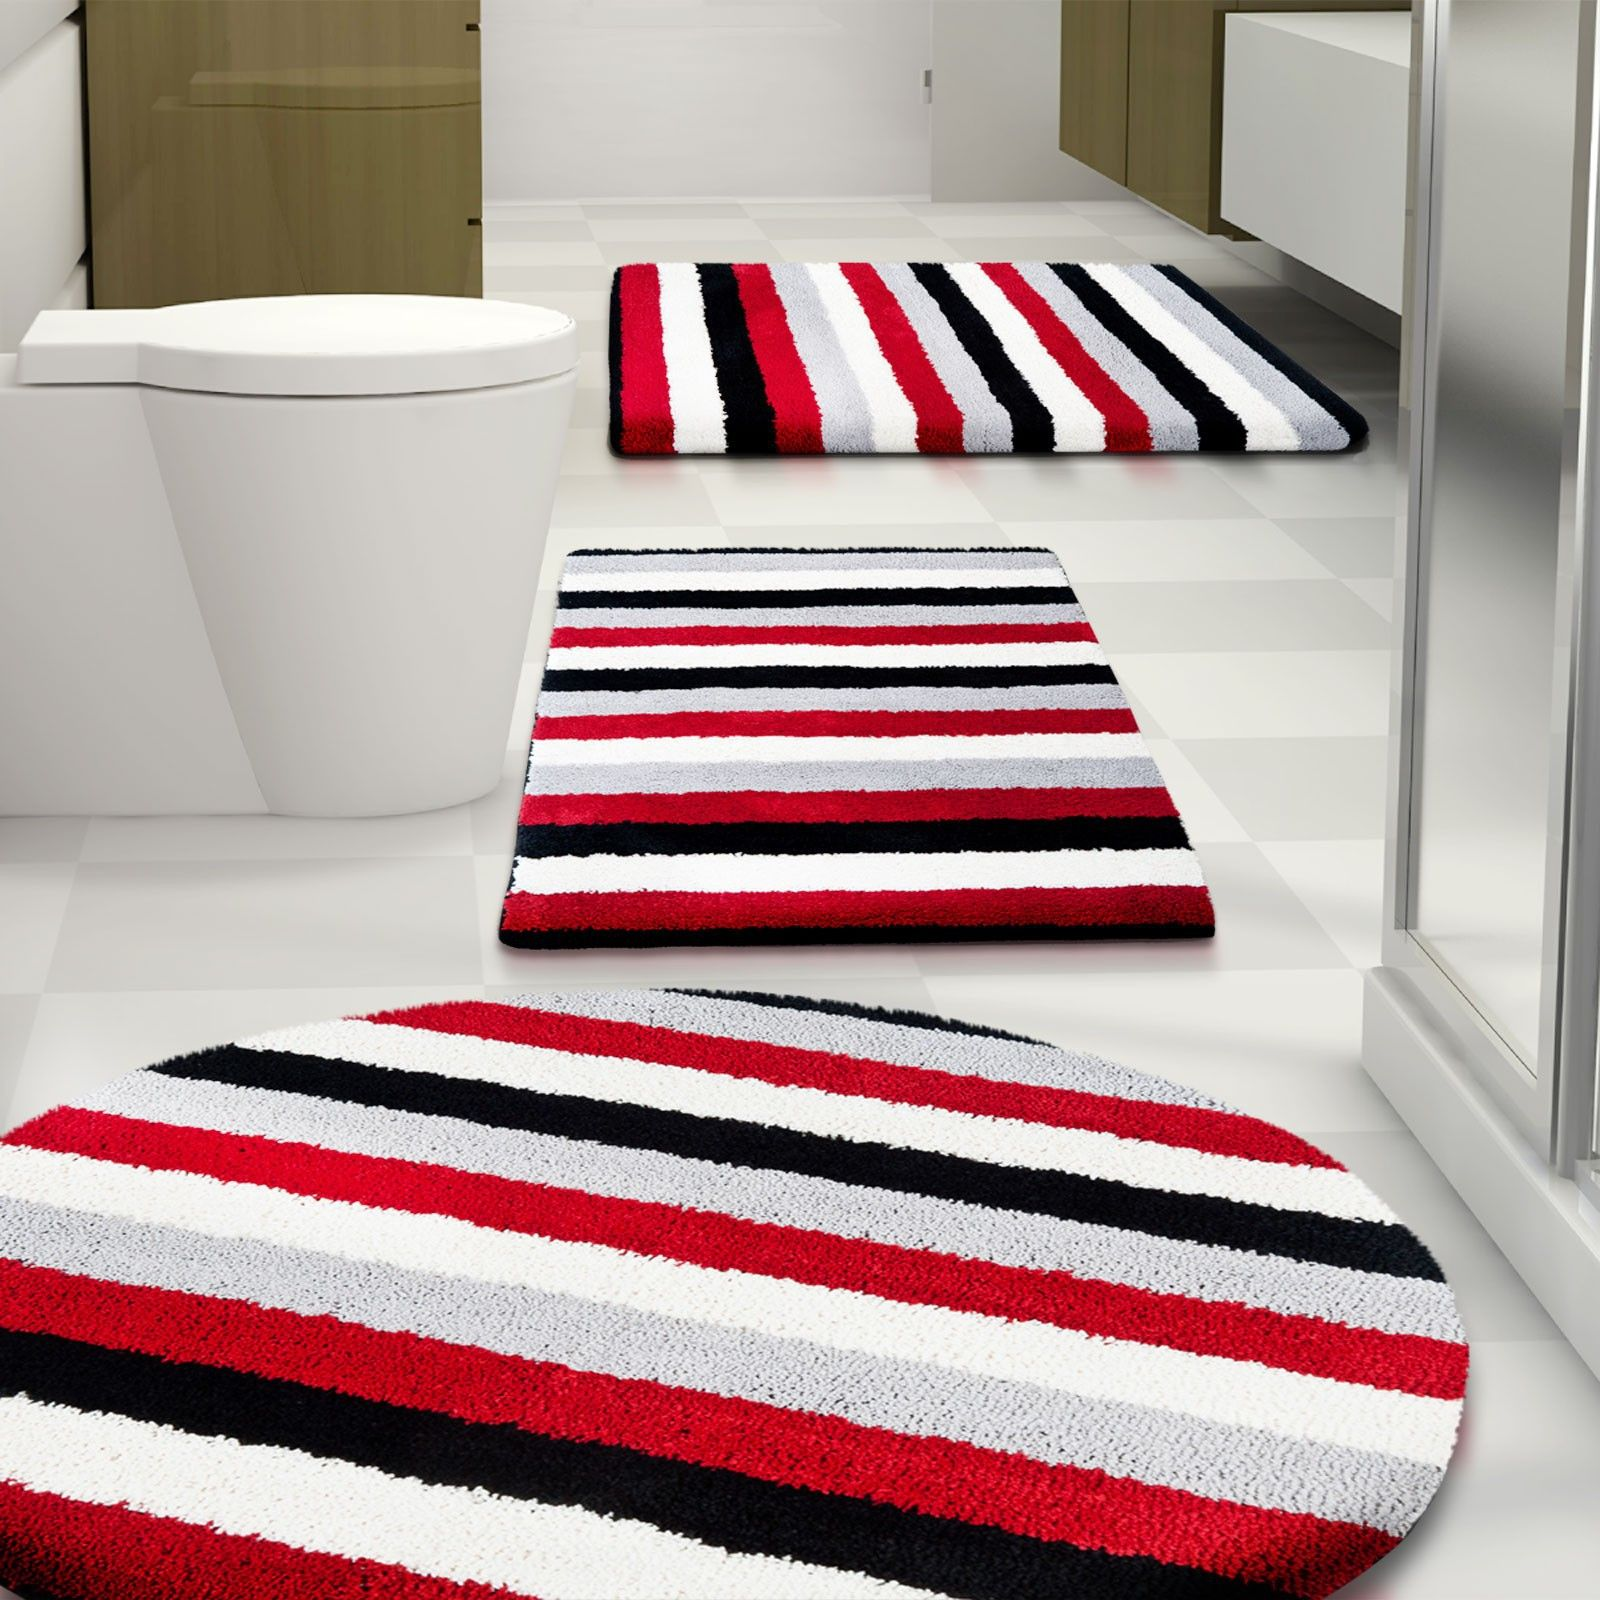 Bathroom Rugs Clearance Bath Mat Rug Paul 5 Sizes Available Red Bathroom Rugs